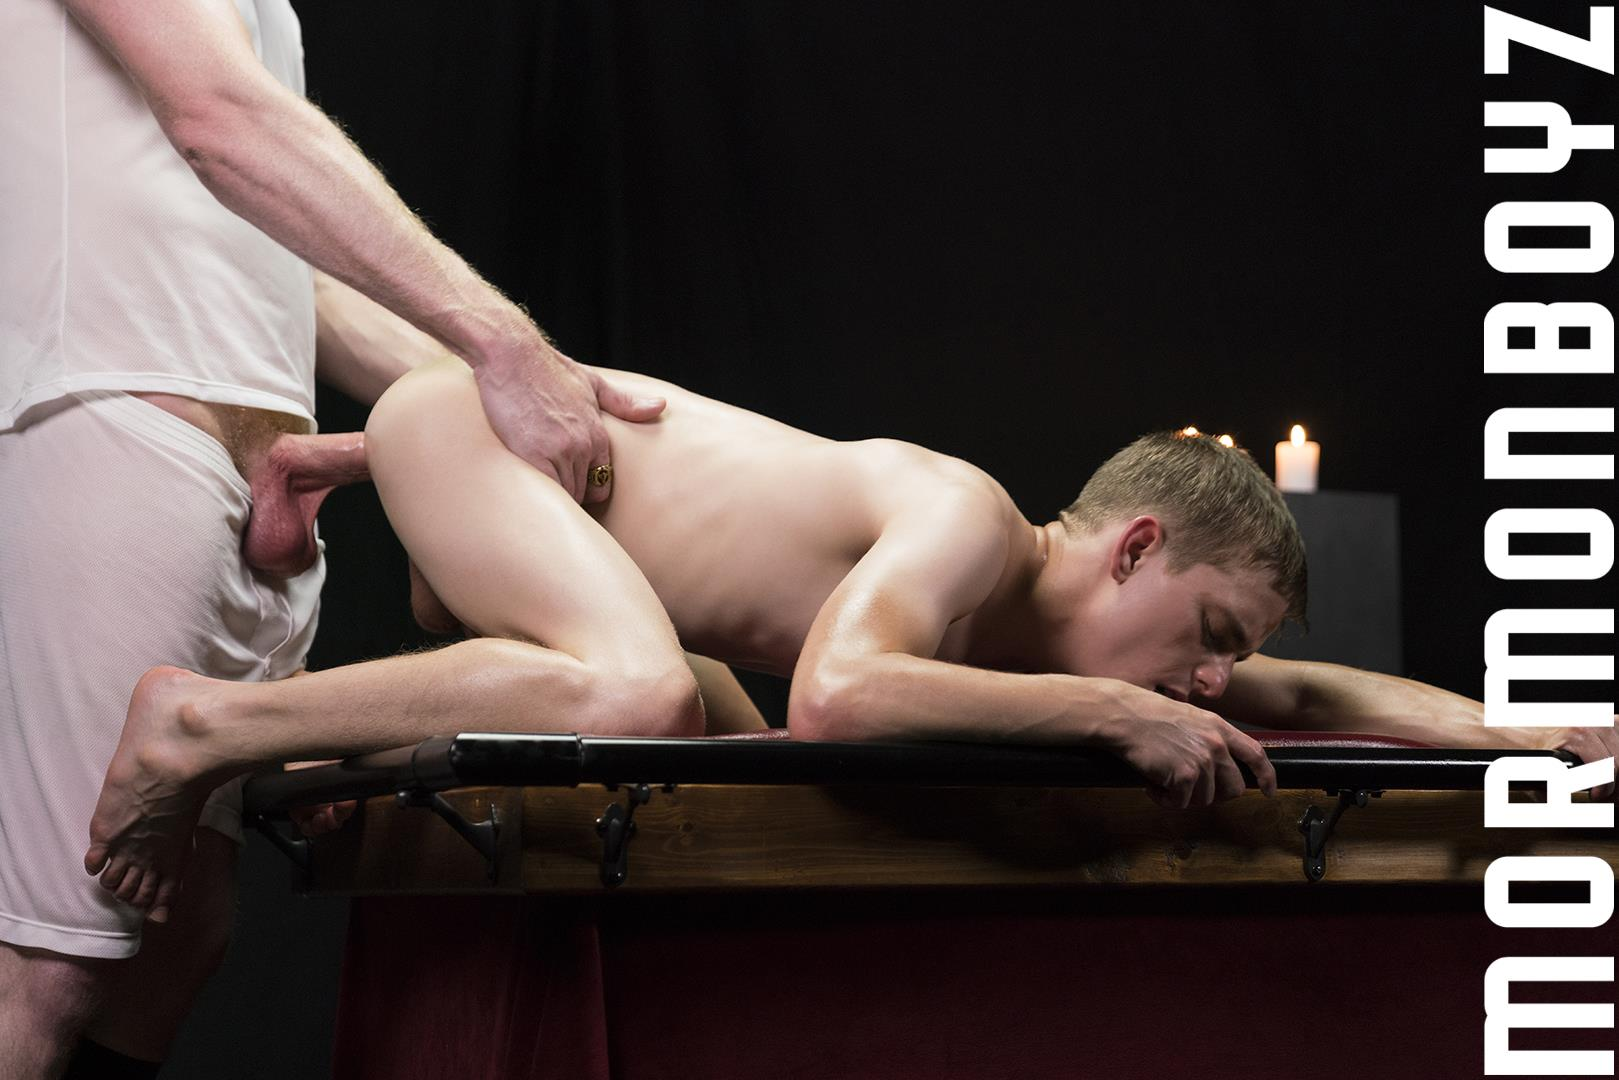 Mormon-Boyz-Older-Big-Dick-Daddy-Barebacking-Younger-Twink-Gay-Sex-Video-24 Mormon Missionary Twink Takes A Thick Daddy Cock Up The Ass Raw